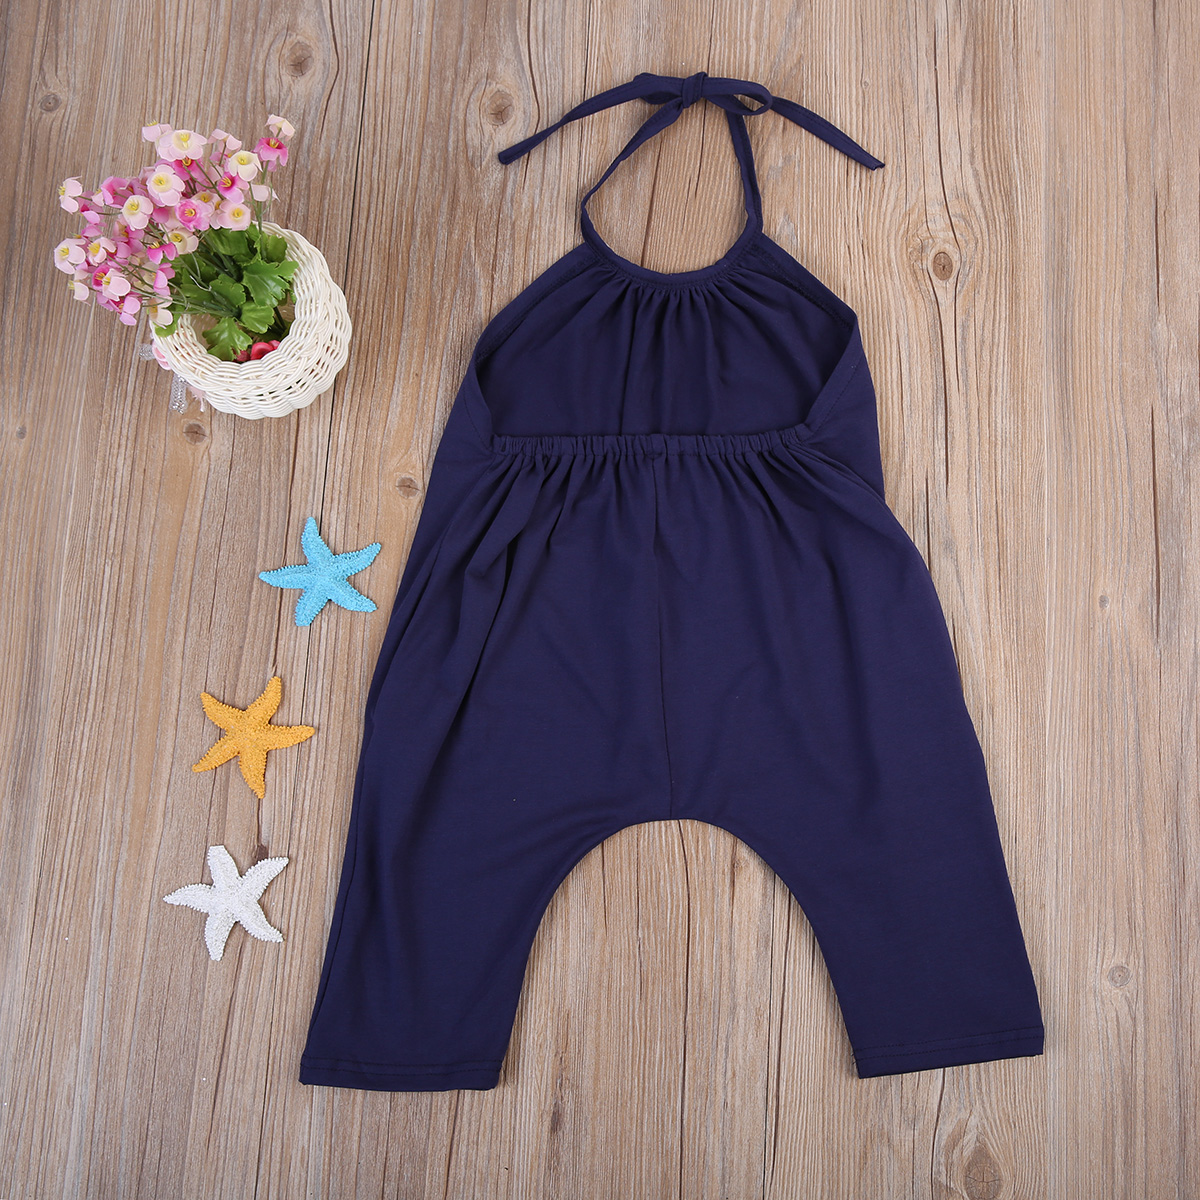 Bodysuits & One-pieces Girls' Baby Clothing 2017 Fashion Kids Baby Girls Strap Cotton Romper Jumpsuit Harem Trousers Summer Clothes